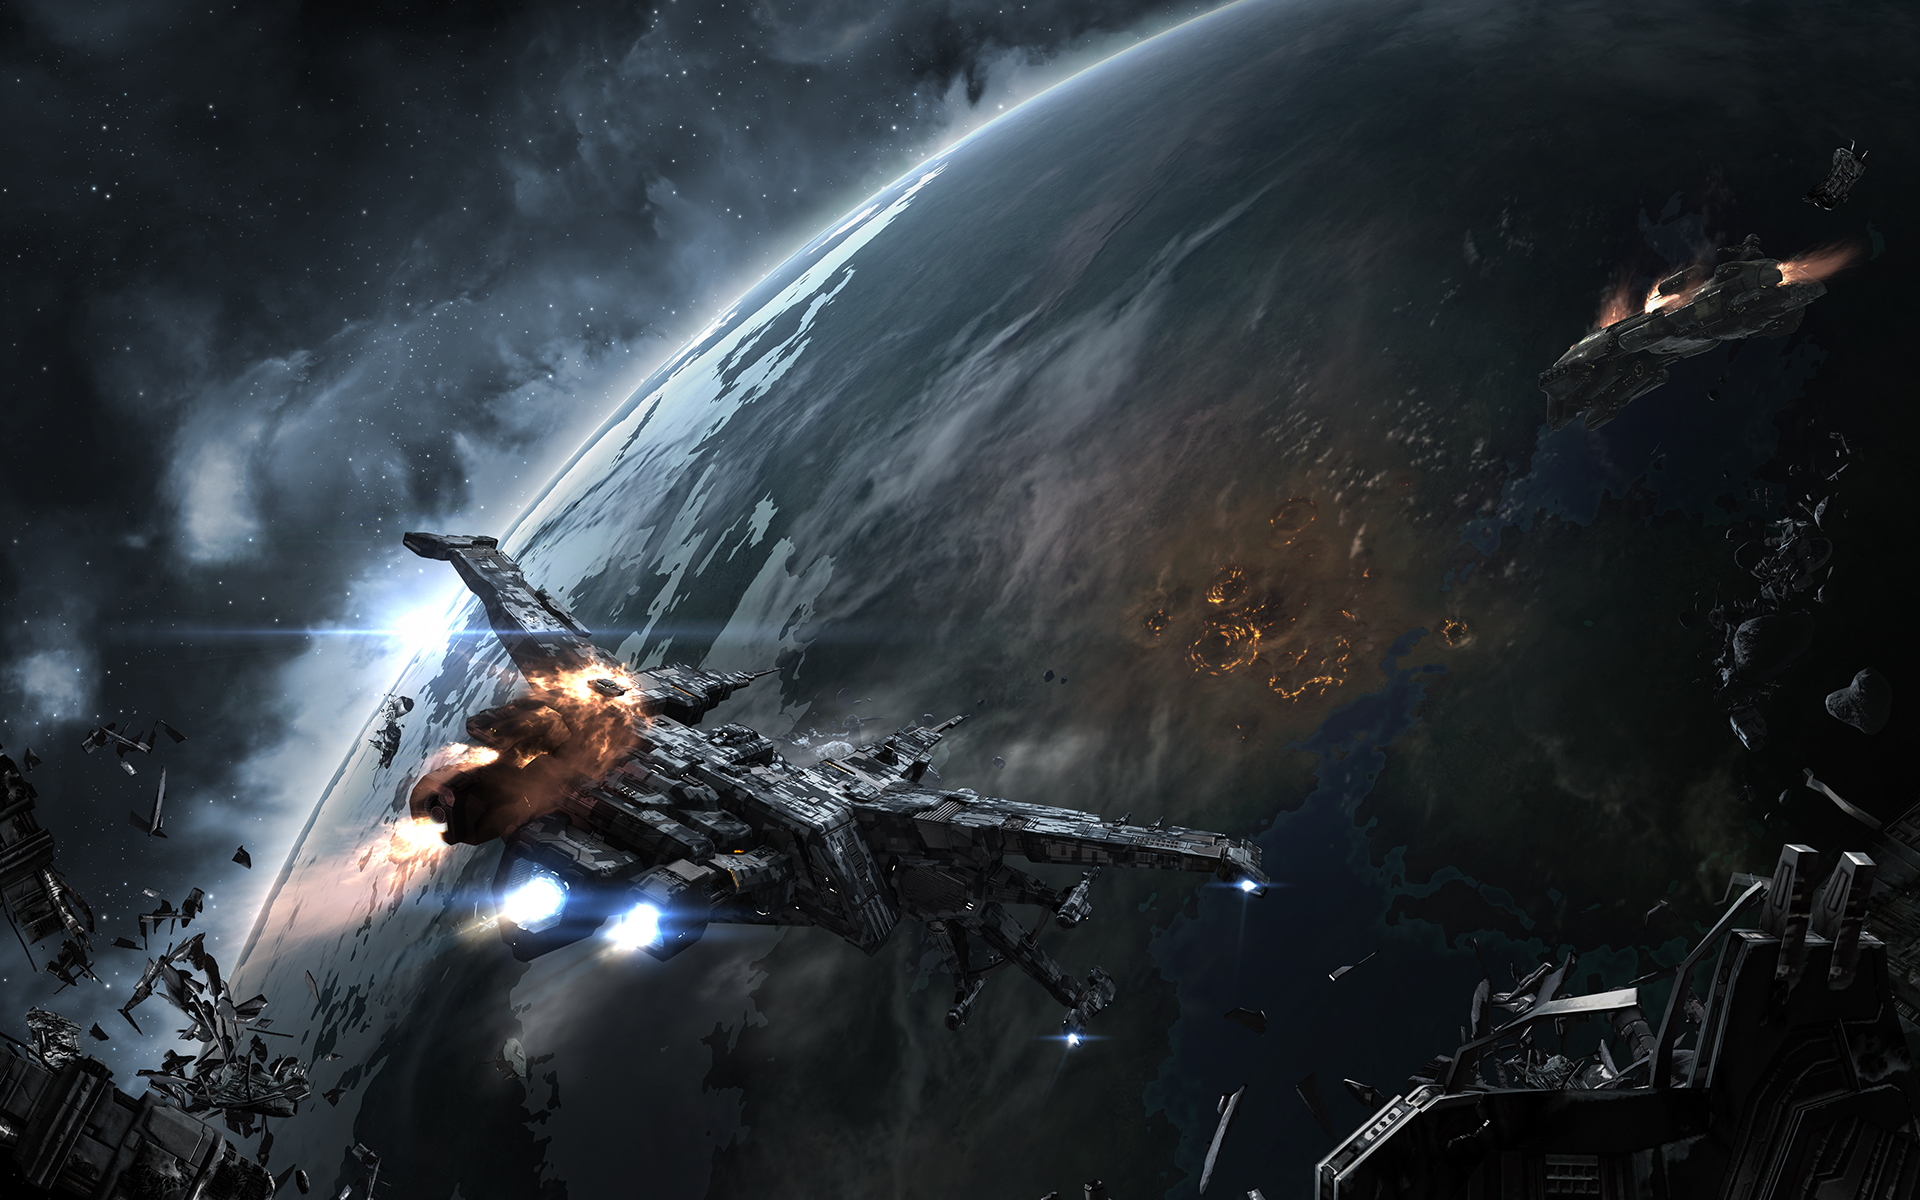 Ships Planets Games Space spaceship planet sci fi wallpaper background 1920x1200